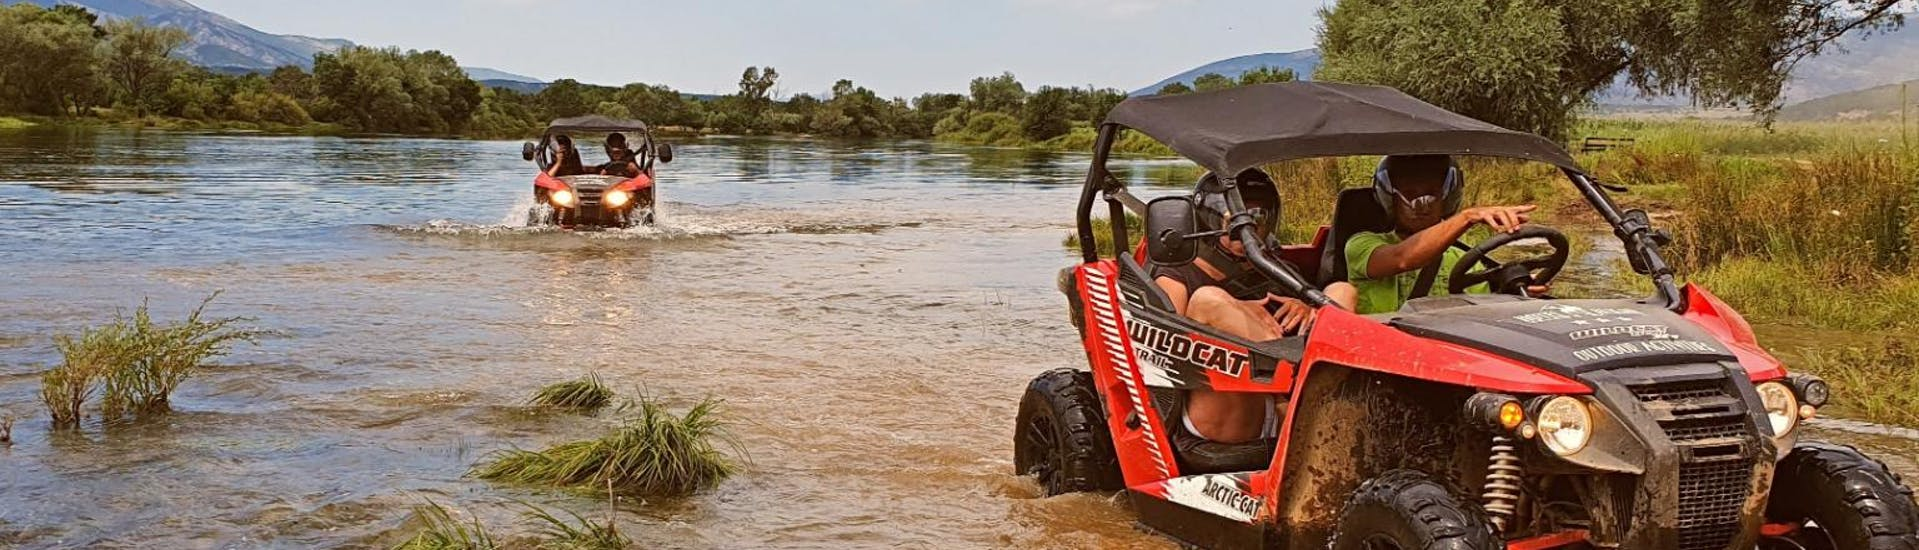 Participants of Cetina River Extreme Buggy Tour from Sinj organised by Hotel Alkar are driving through a river.